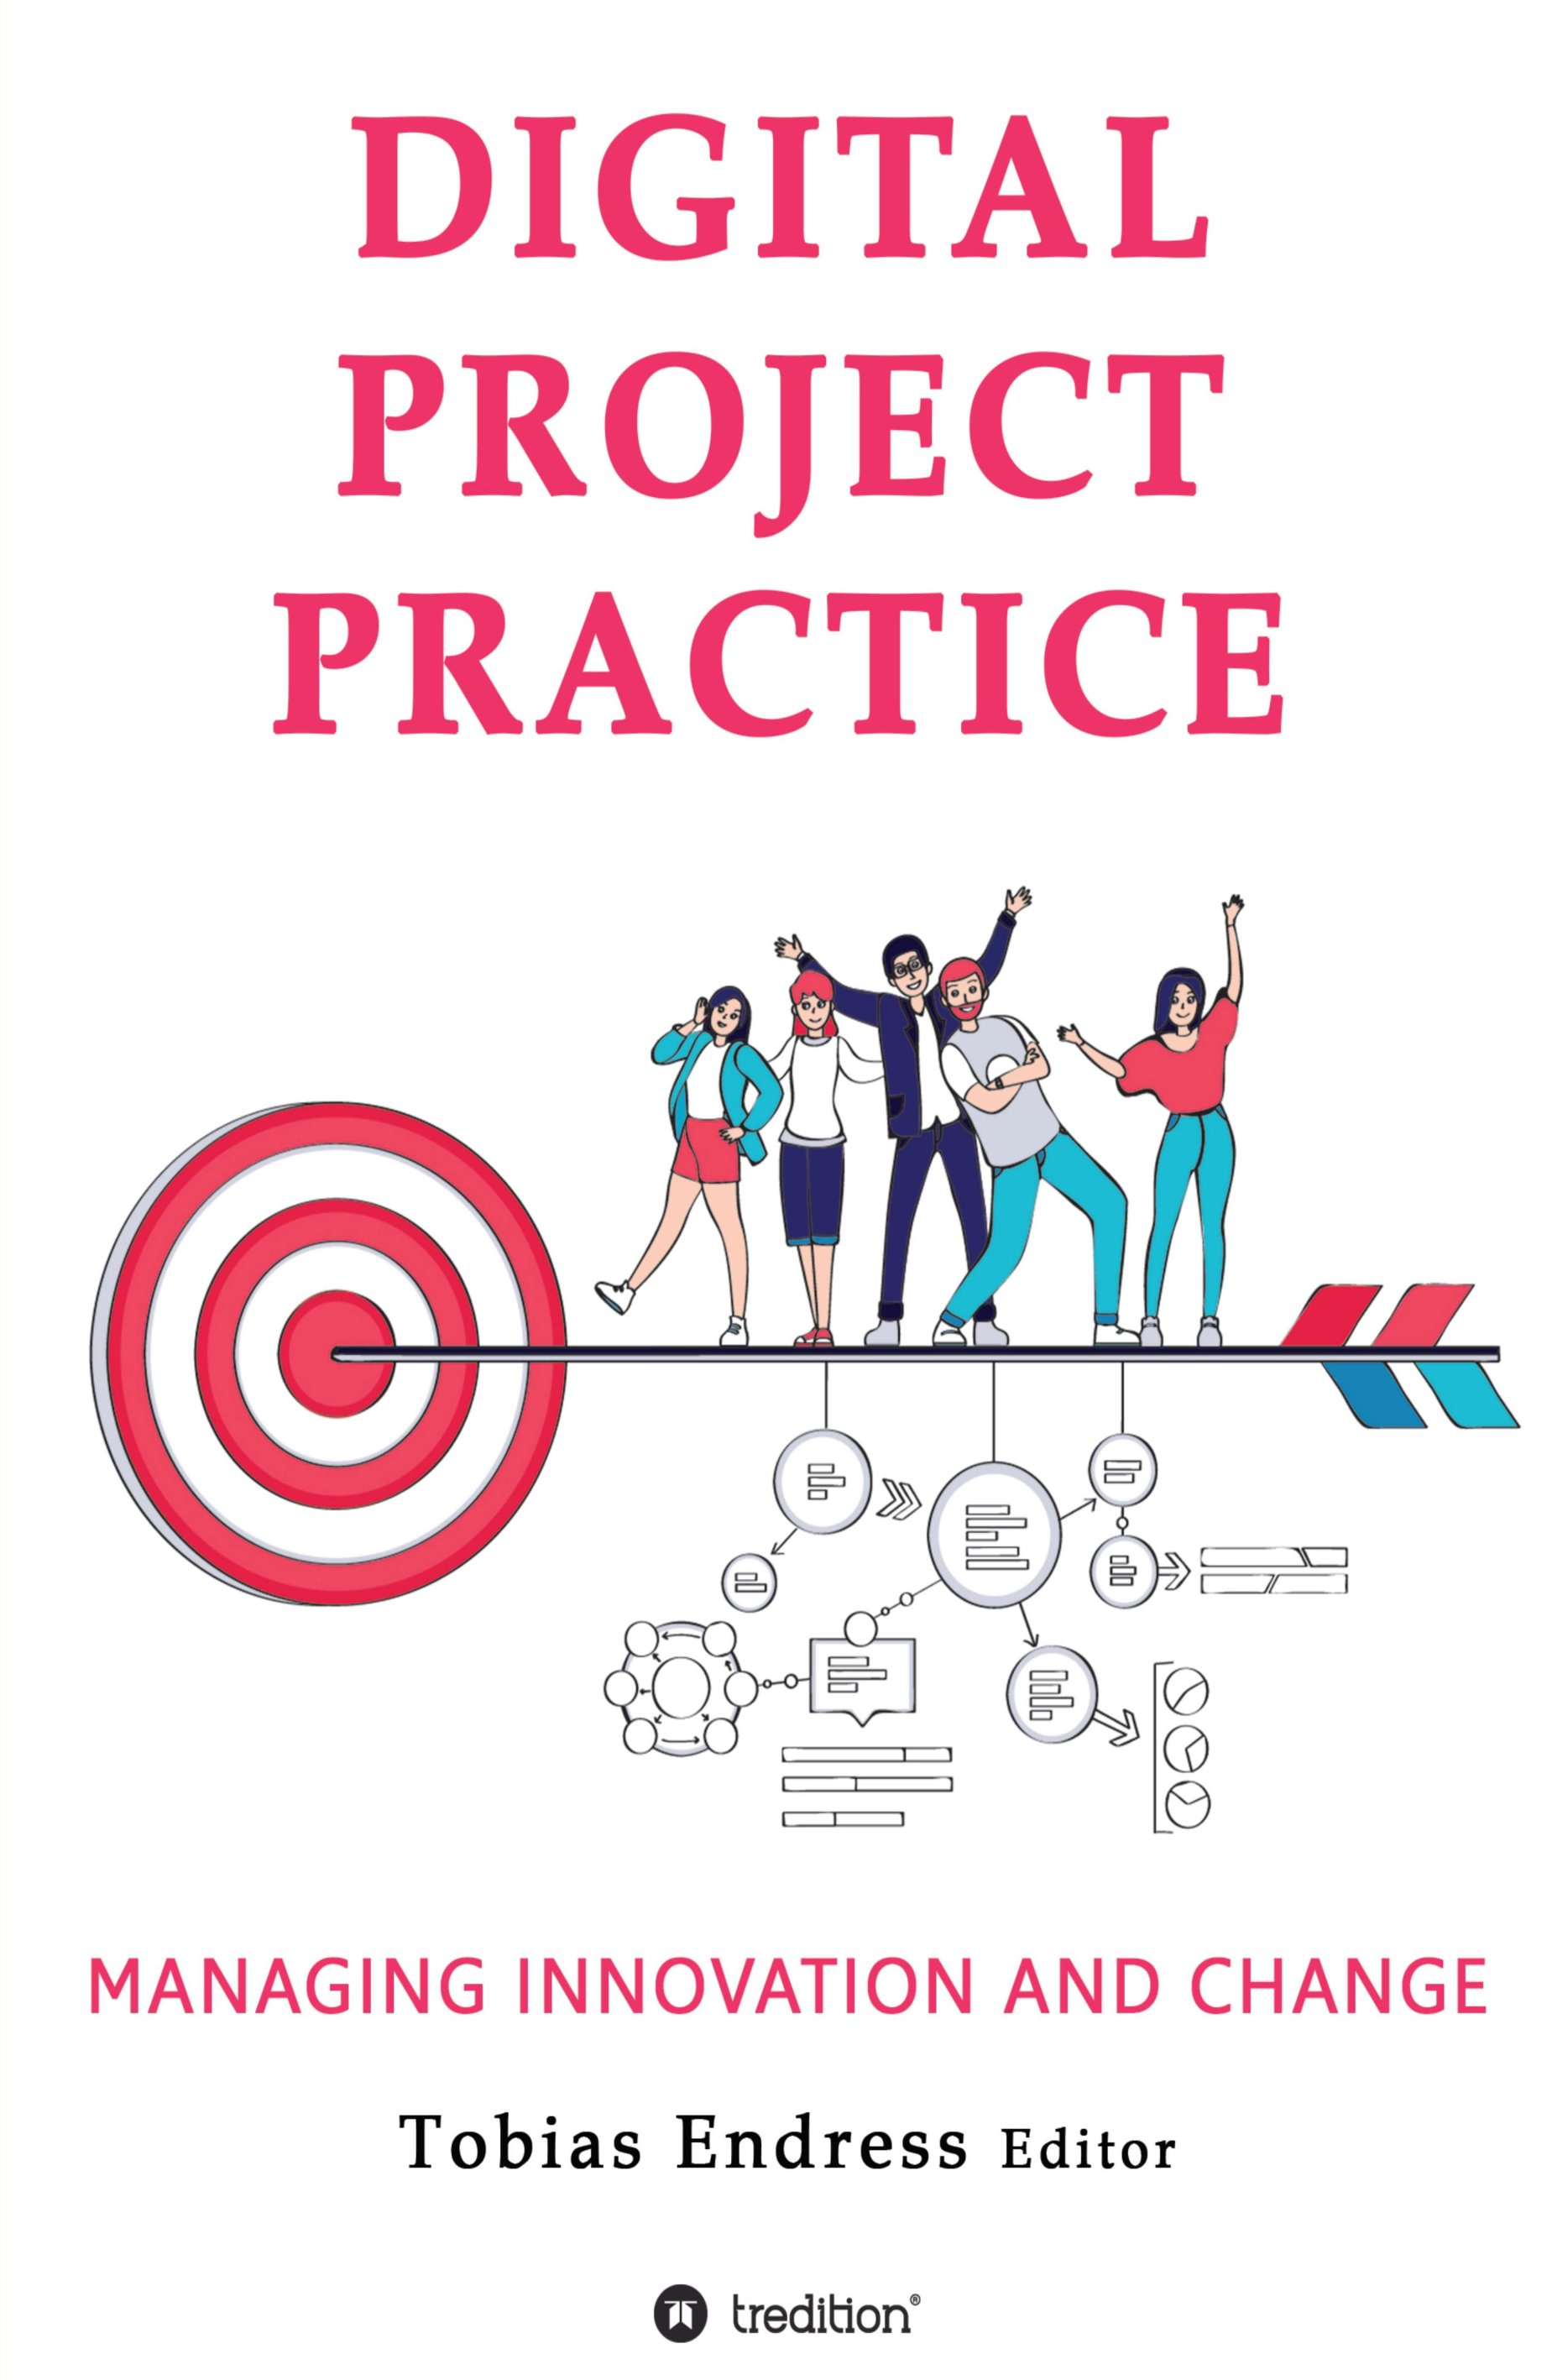 Digital Project Practice - Managing Change and Innovation